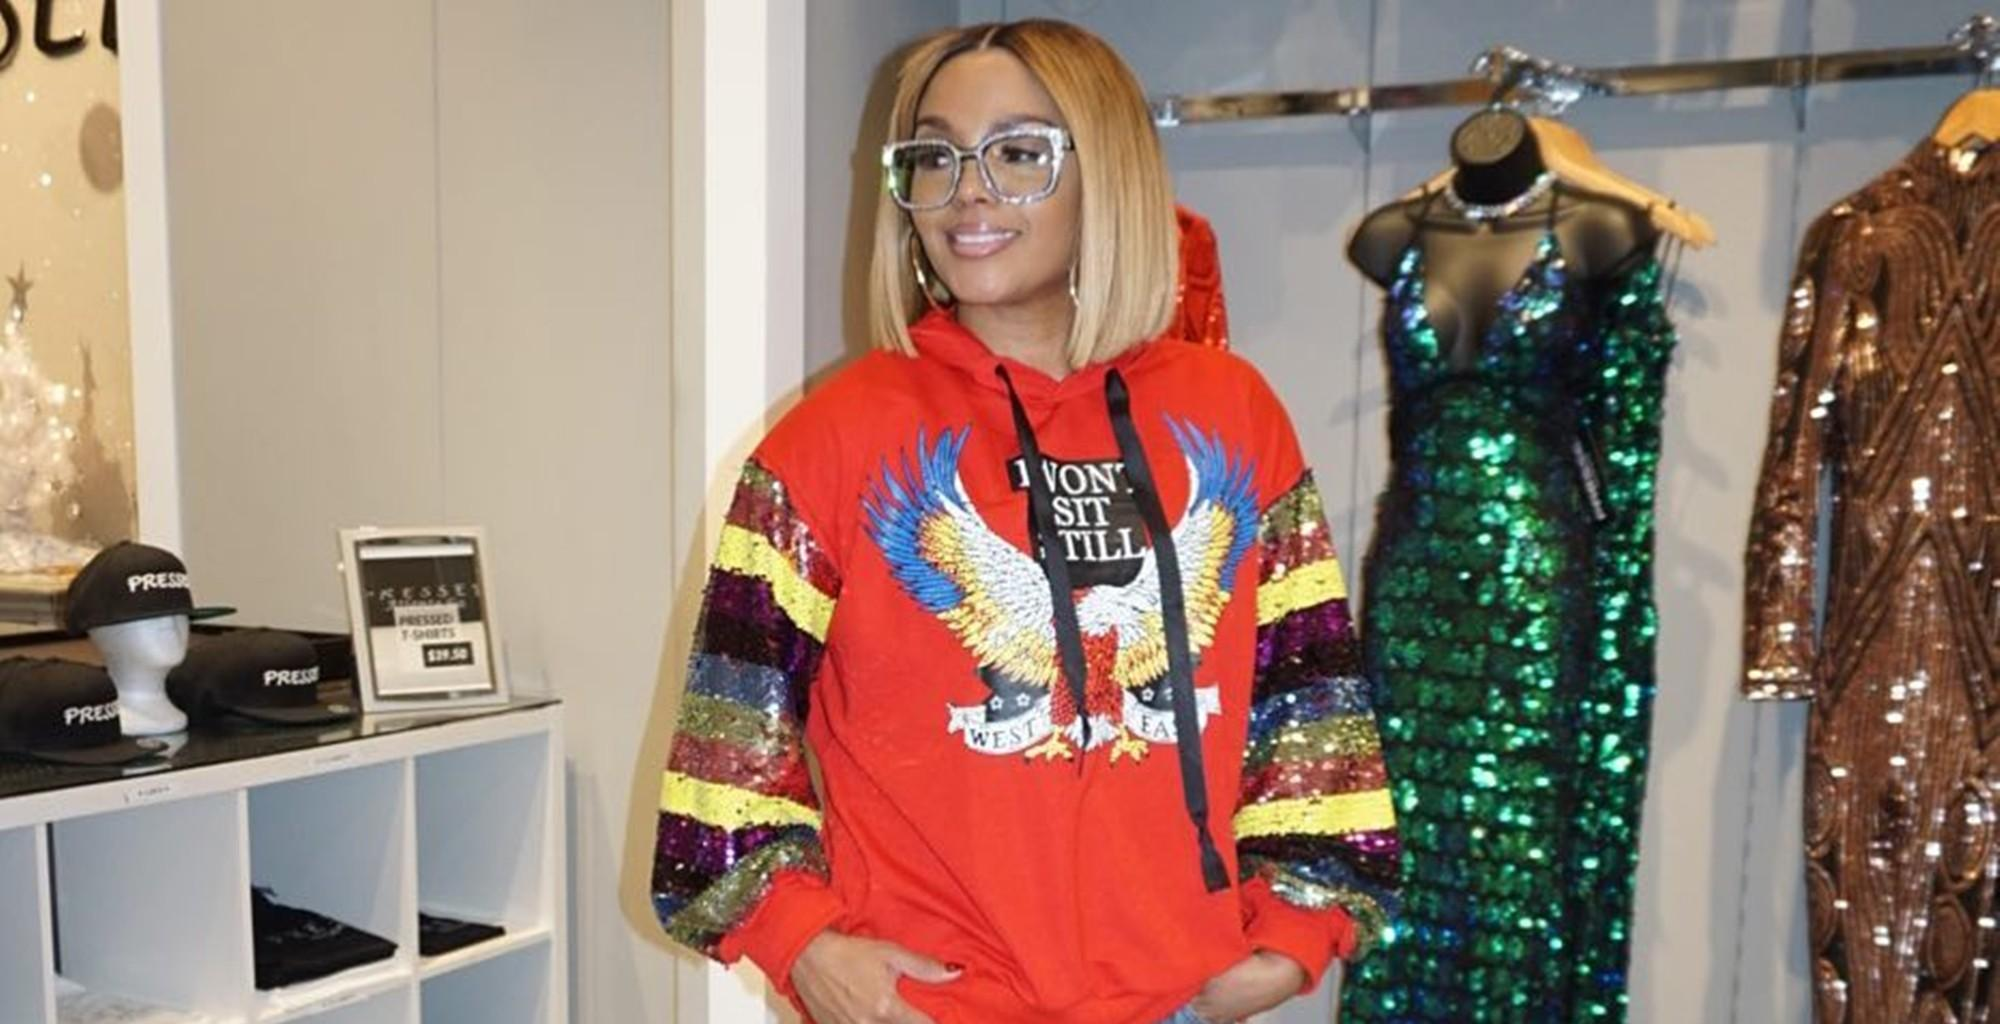 Rasheeda Frost Makes Fans Laugh With Some Kind Of 'NASA Broom Voodoo' - Check Out The Video To See What's This All About